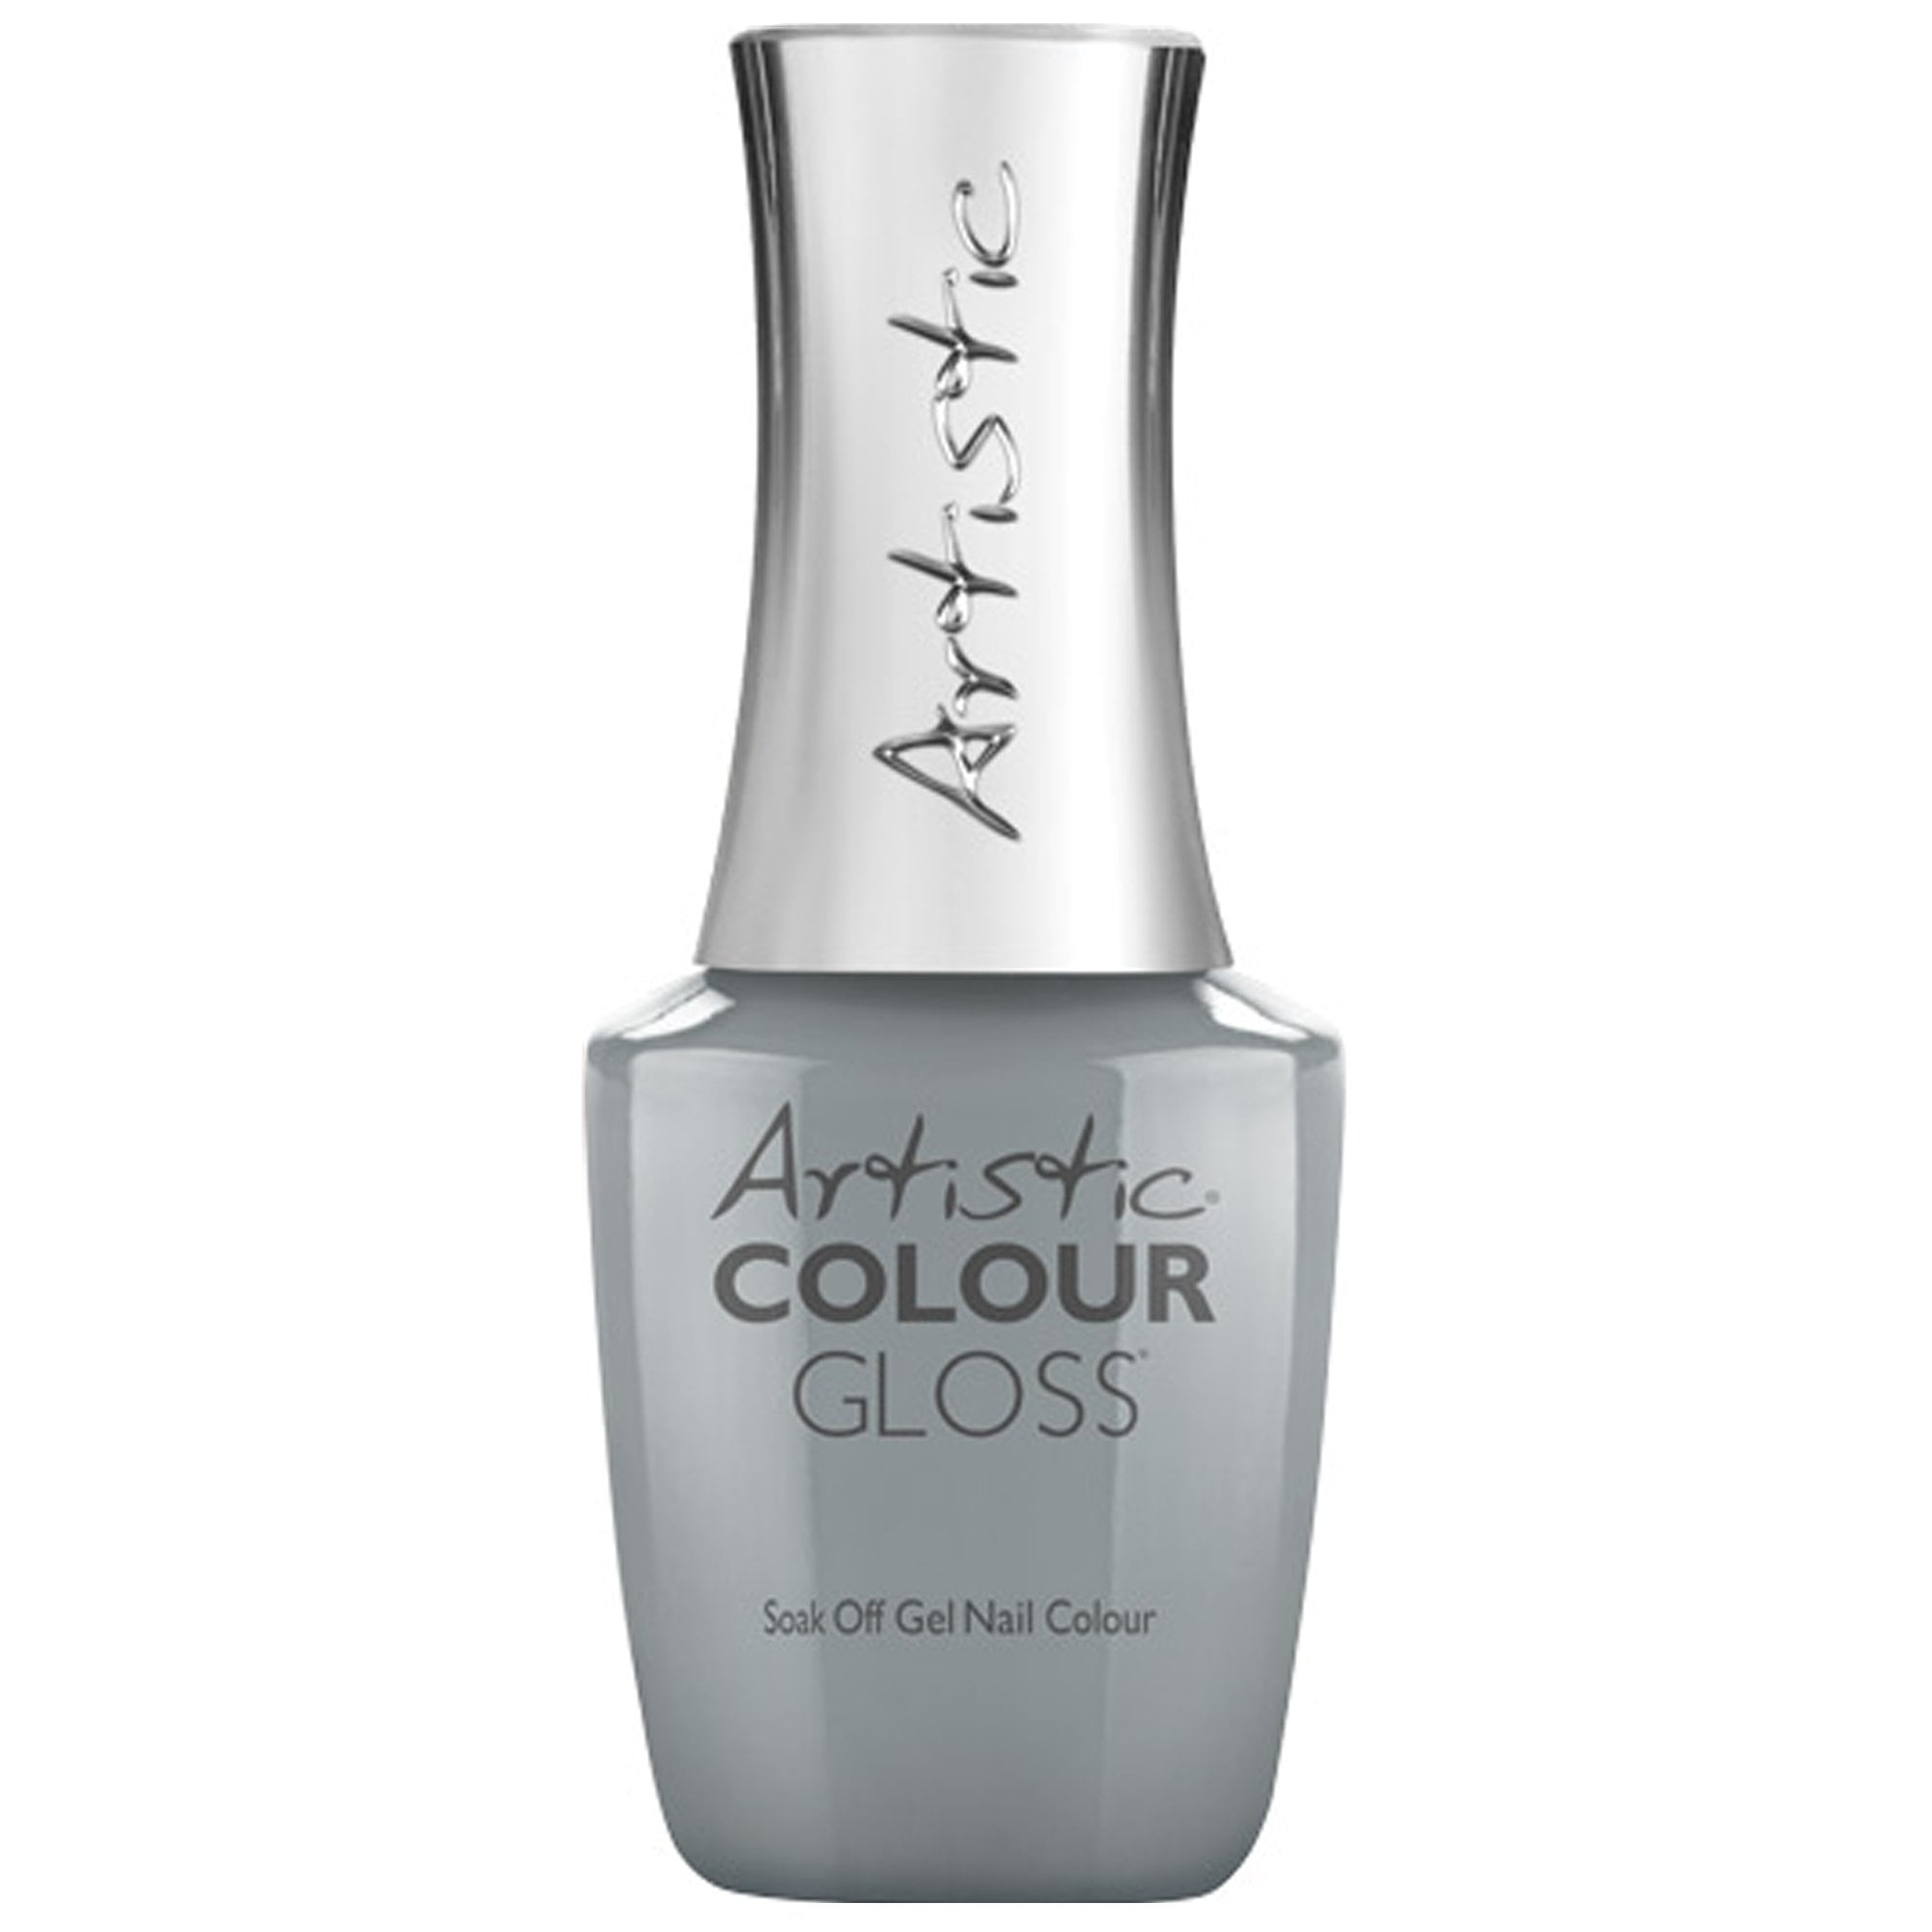 Artistic Colour Gloss Gel Nail Polish Collection Trending Now (03267)